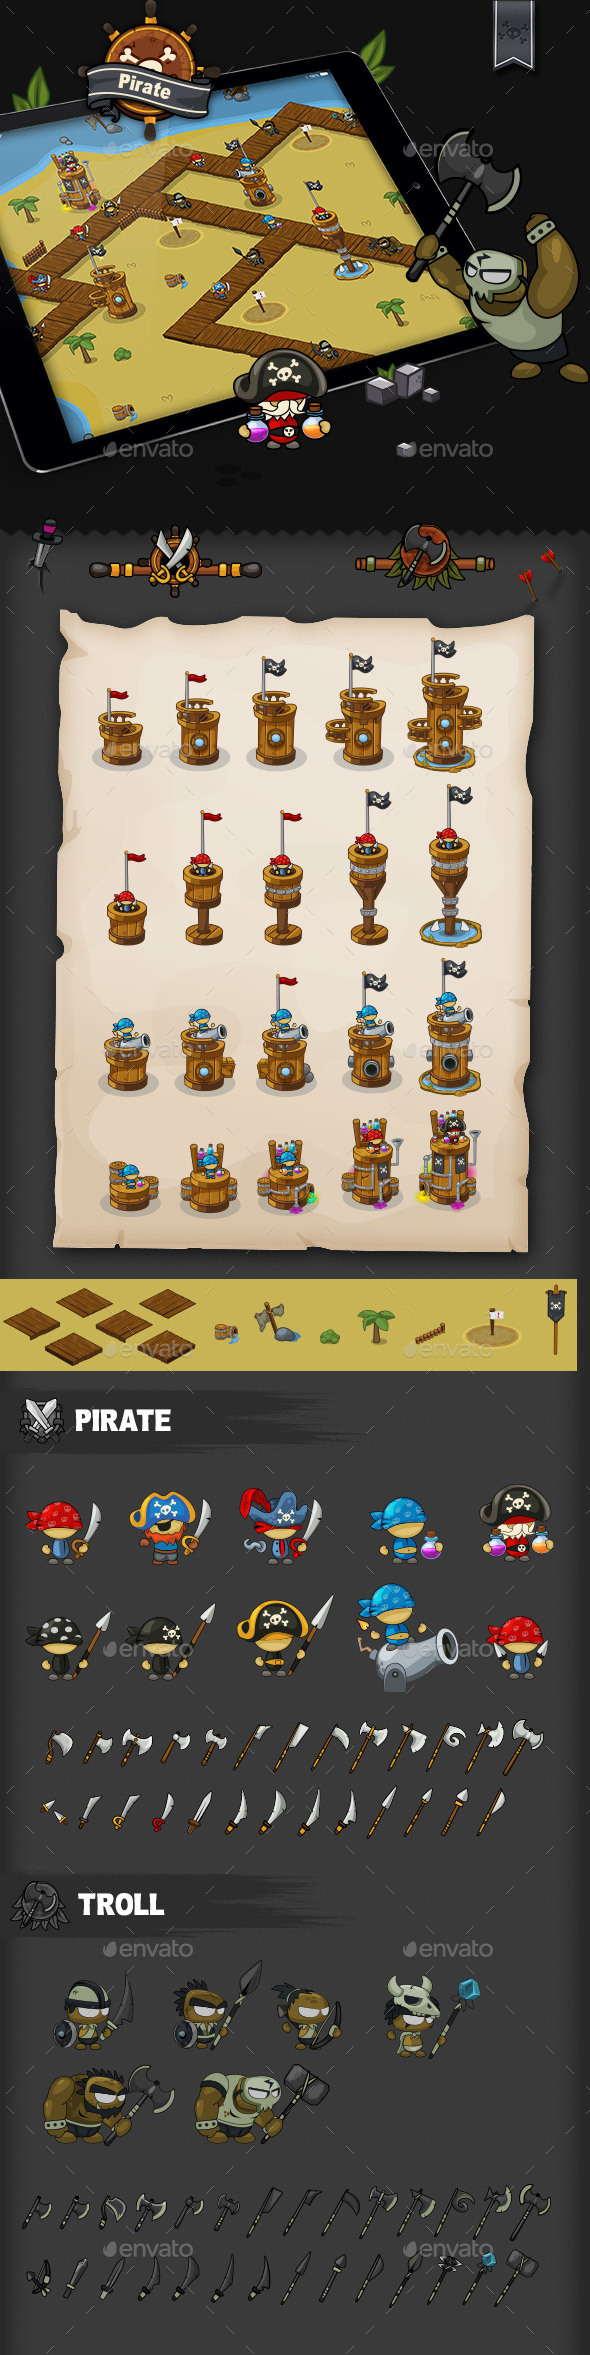 Tower Defense Game Set Pirate - Game Kits Game Assets